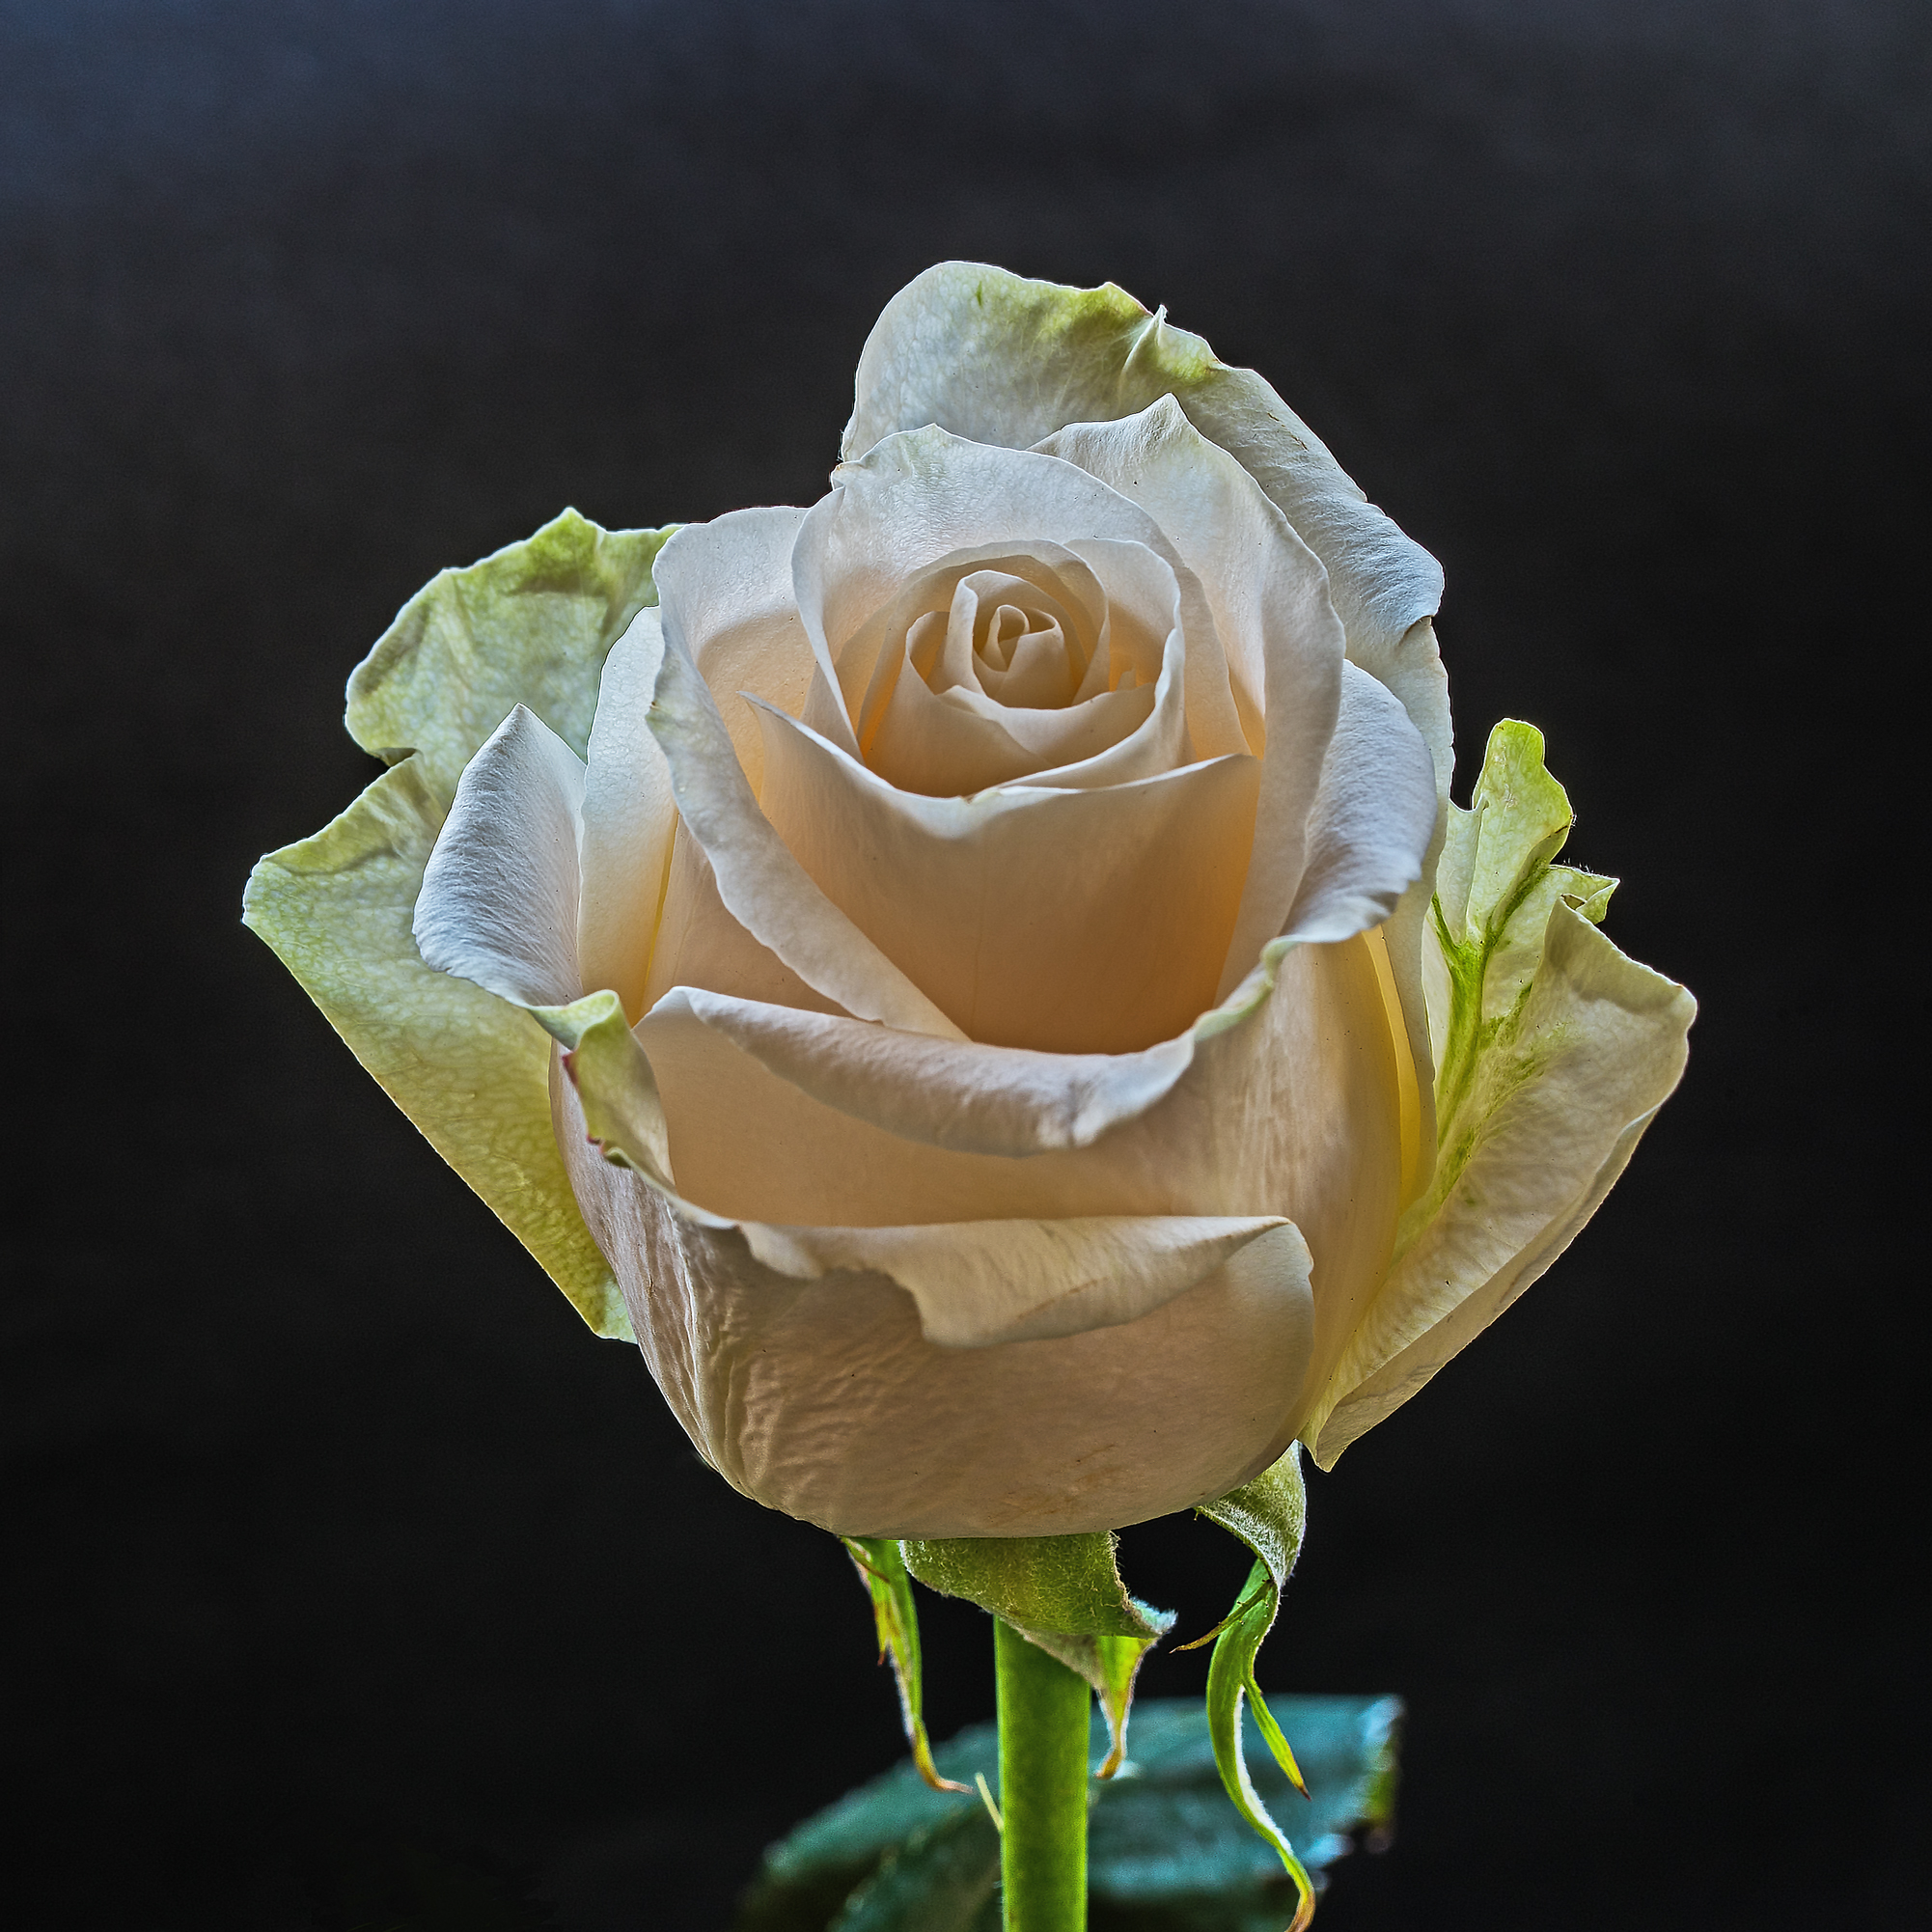 A rose dedicated to you...